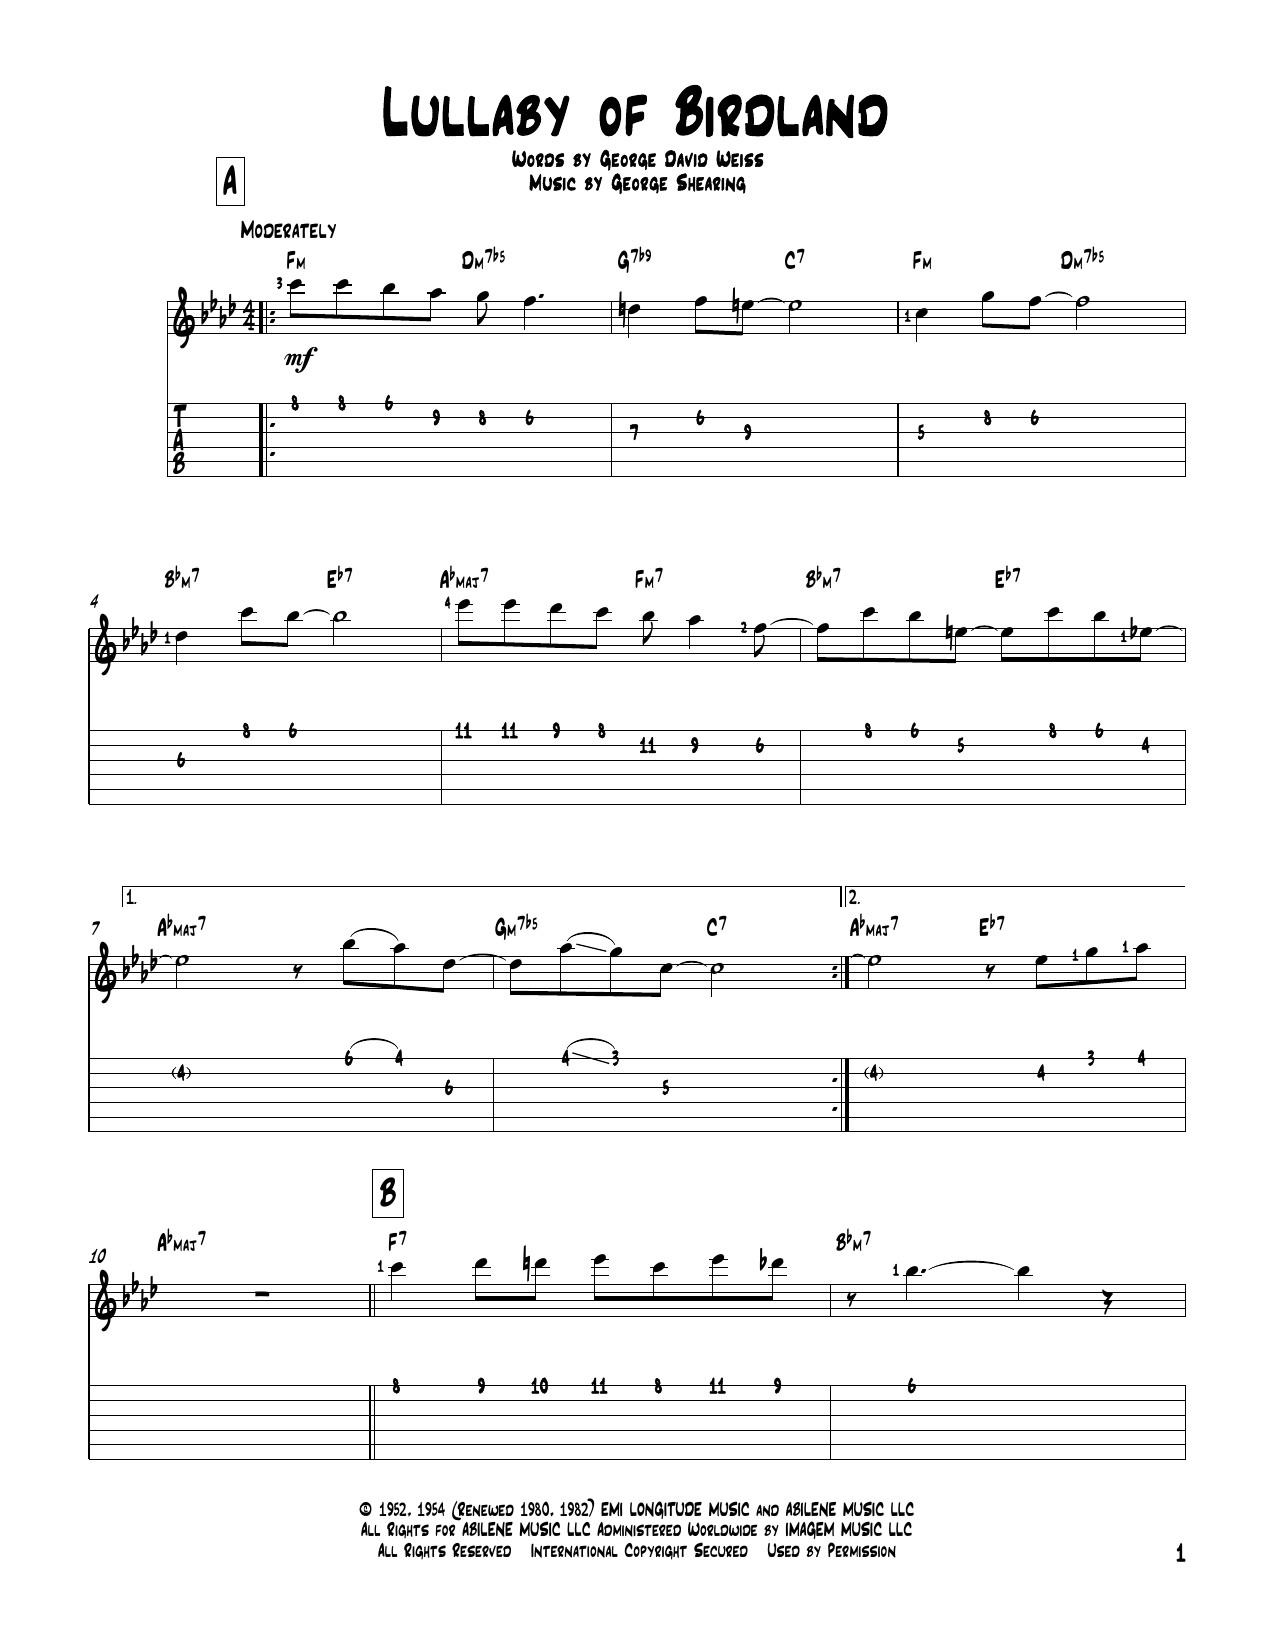 Guitar Solo Sheet Music at Stanton s Sheet Music